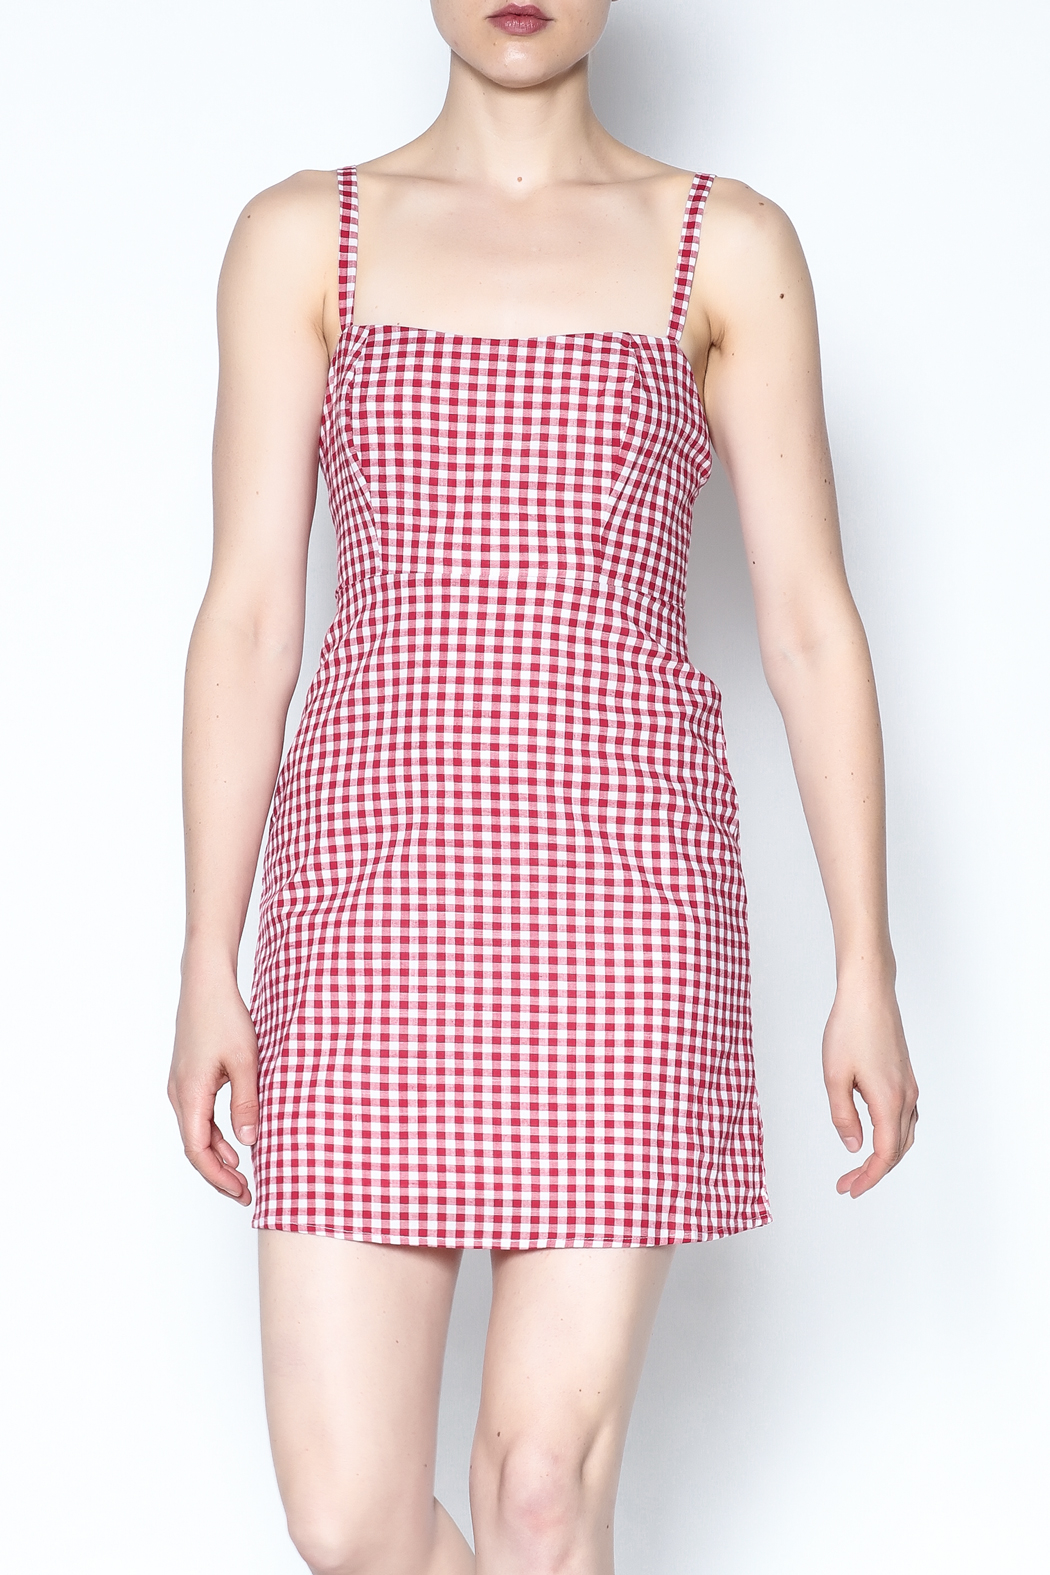 ed293713b2a Honey Punch Gingham Cami Dress from New York by Dor L Dor — Shoptiques